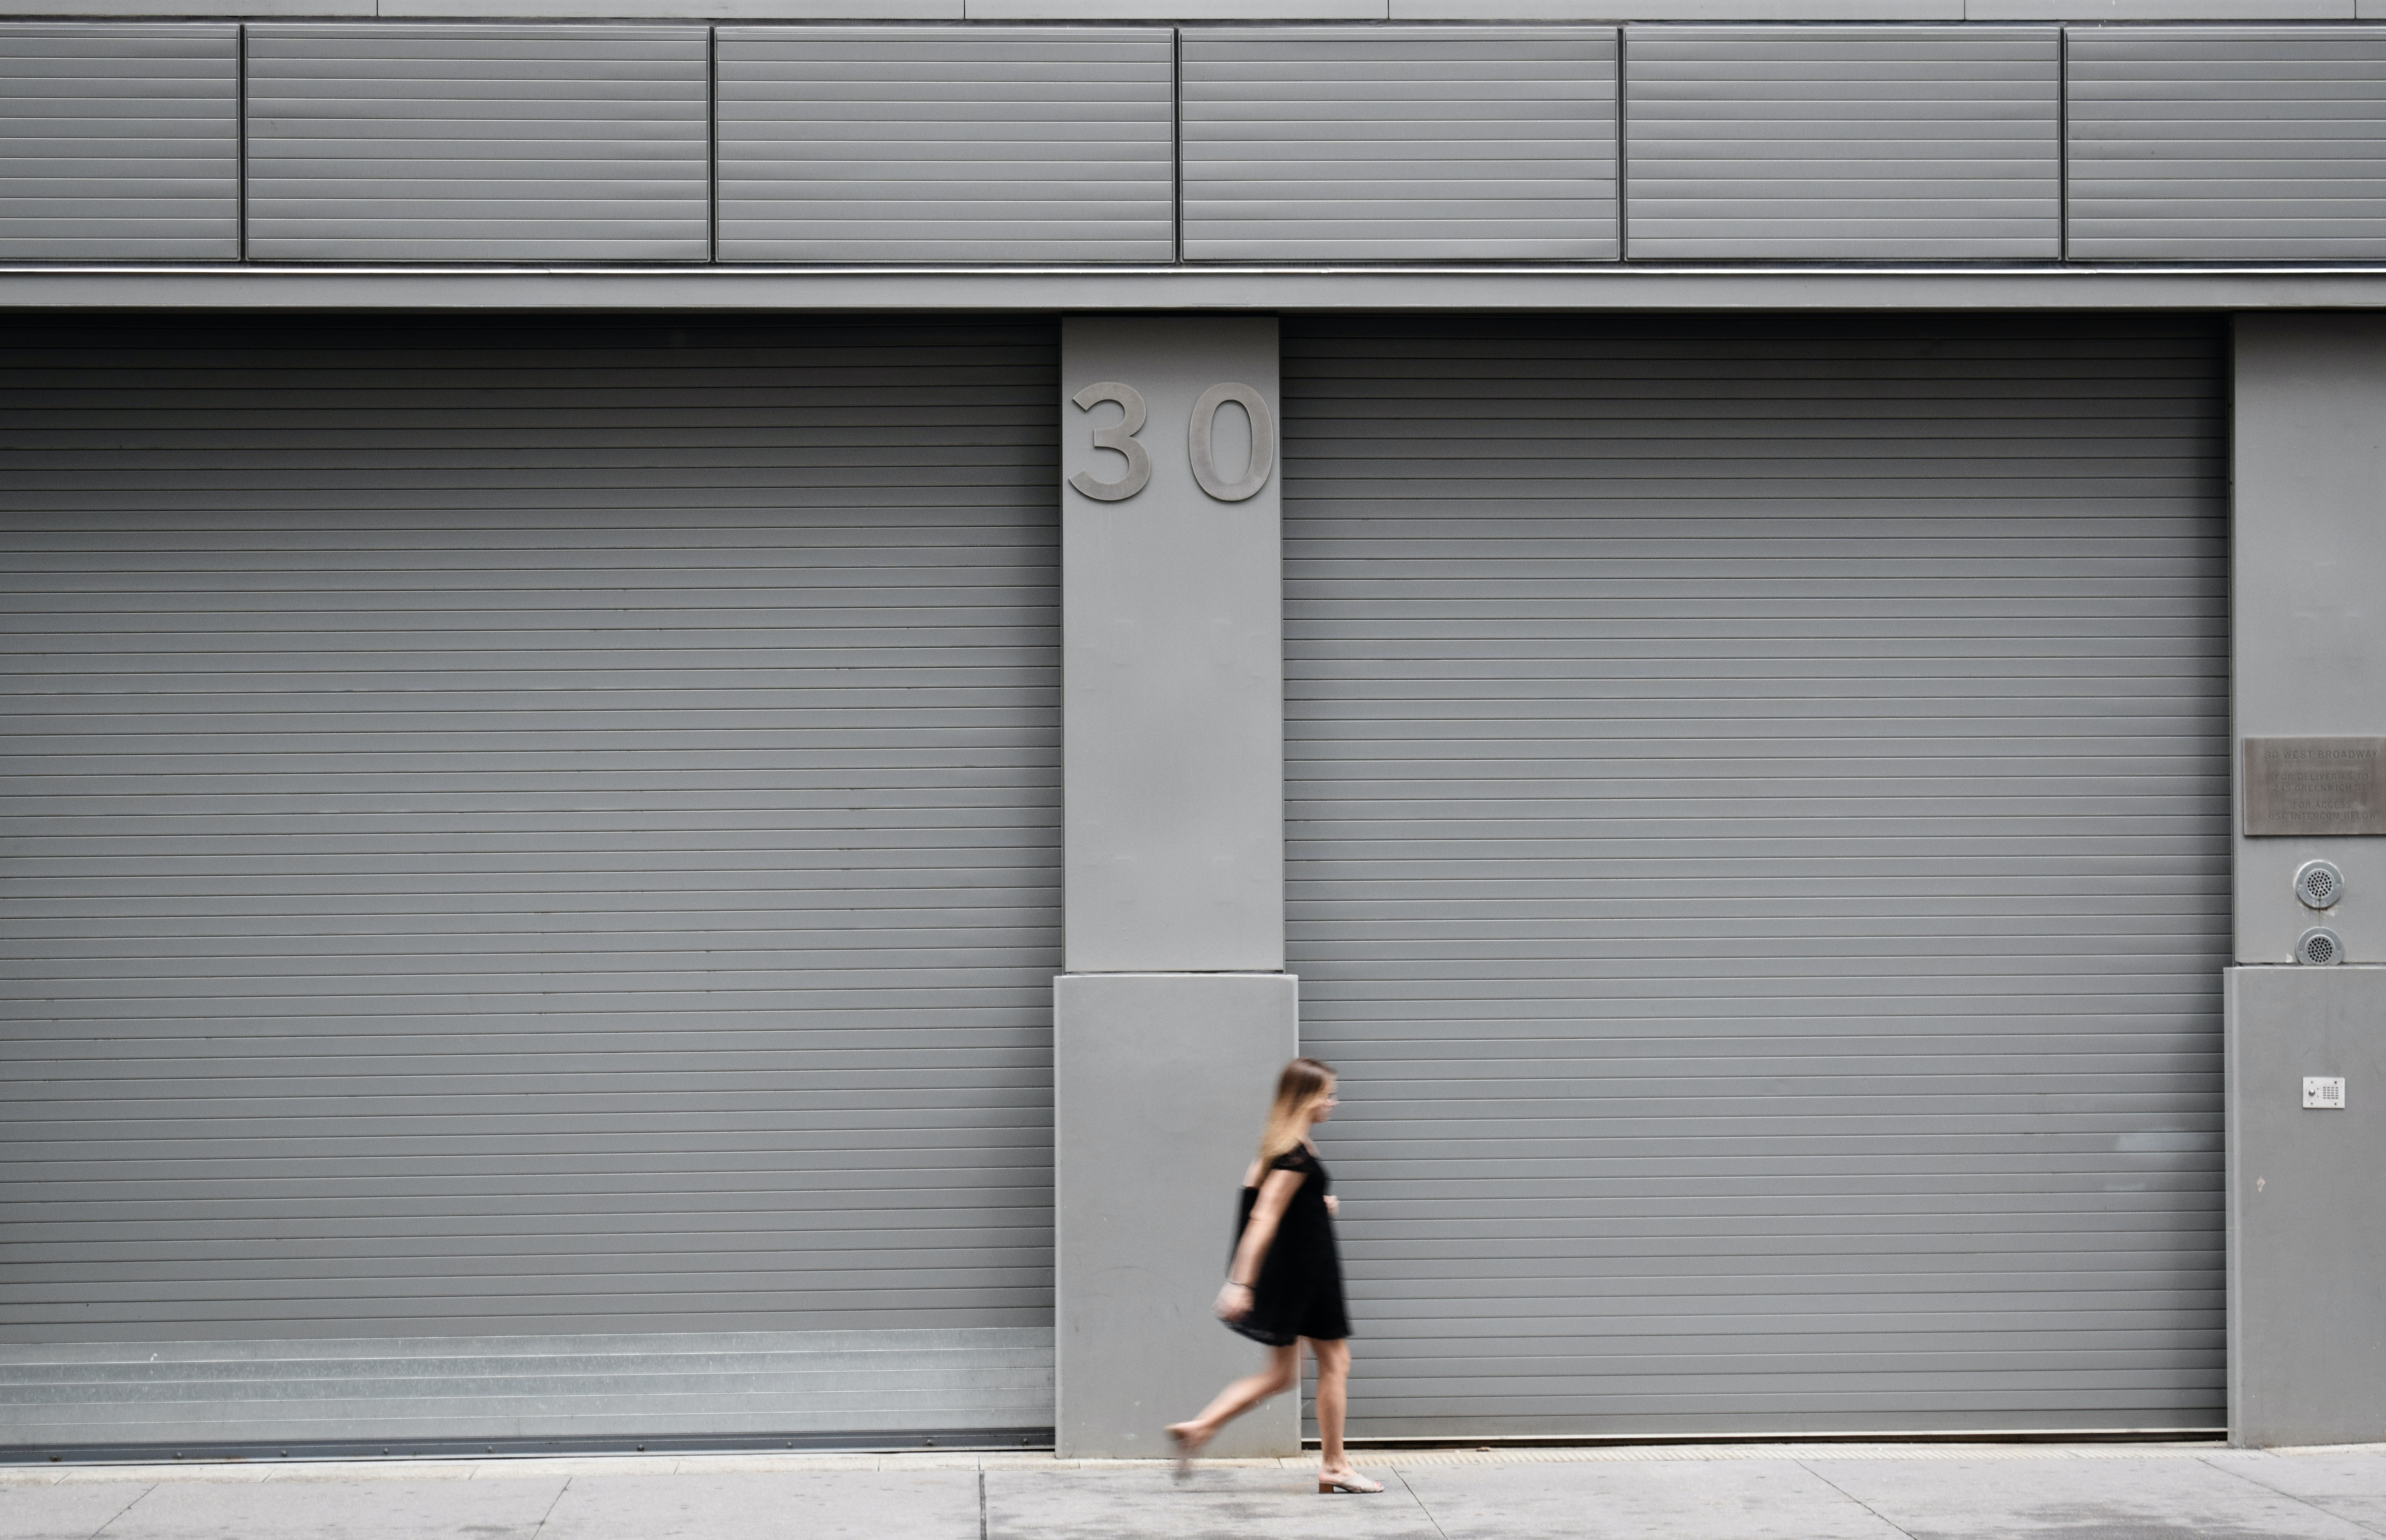 A woman walks along a gray colored building with the number 30.